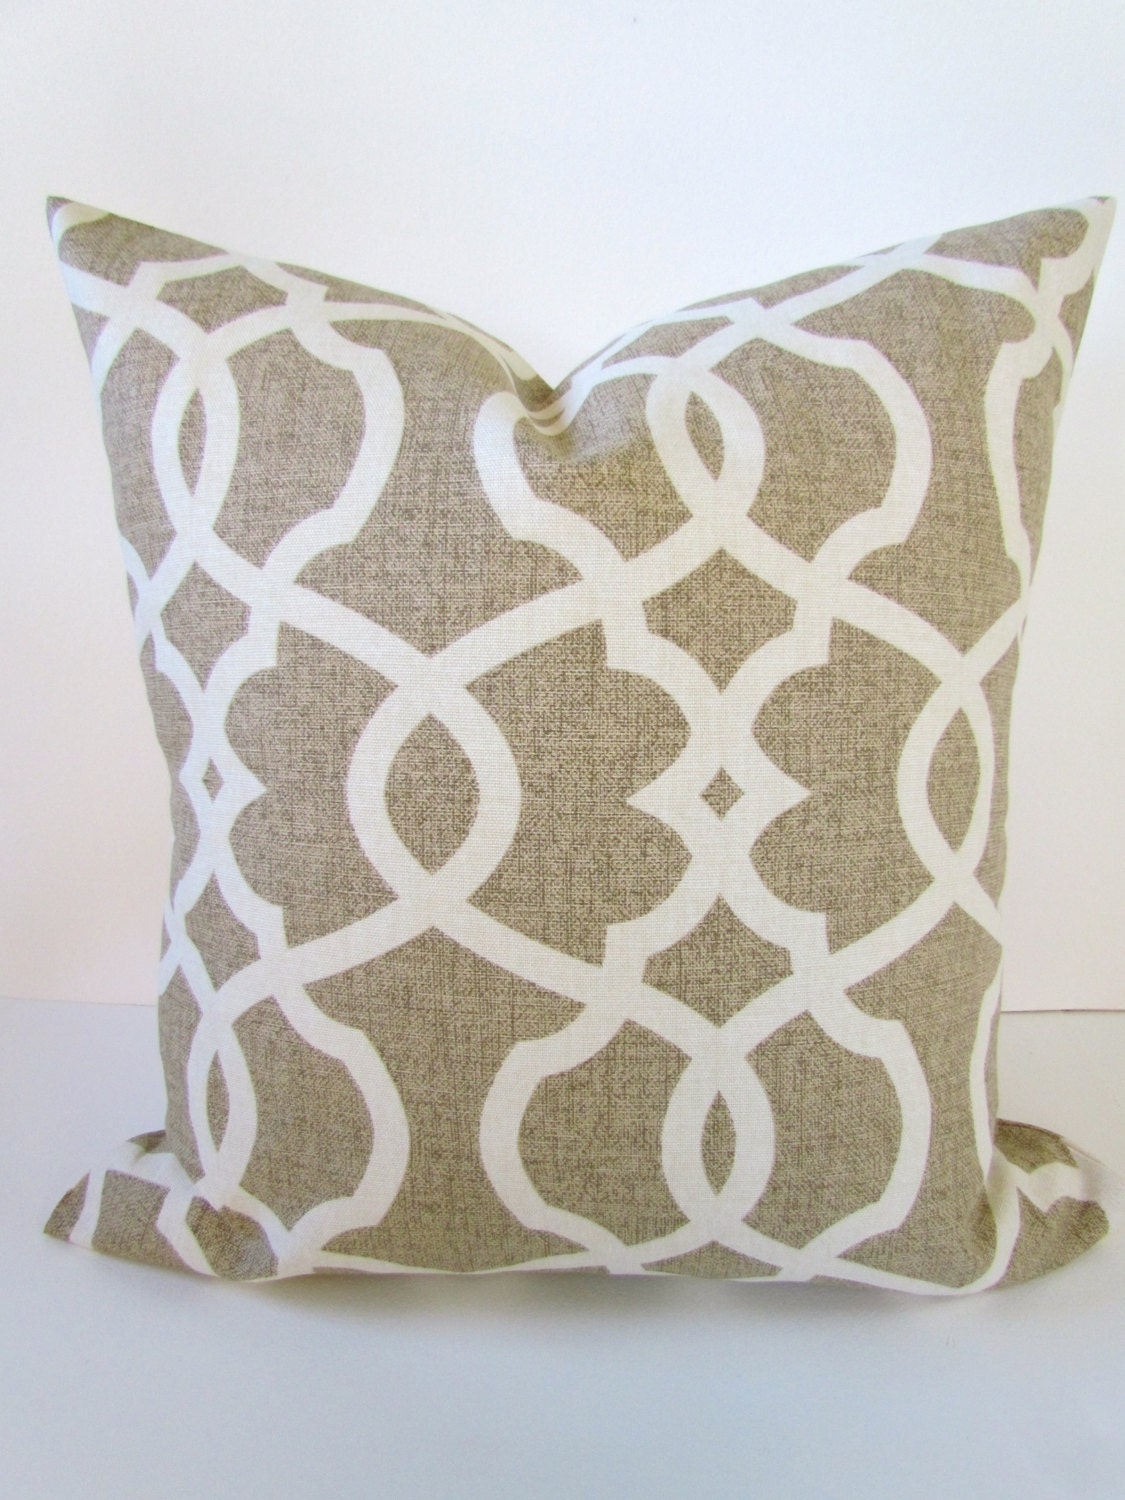 Throw Pillows Tan : TAN PILLOWS Tan Decorative Pillow Covers Taupe Throw Pillow